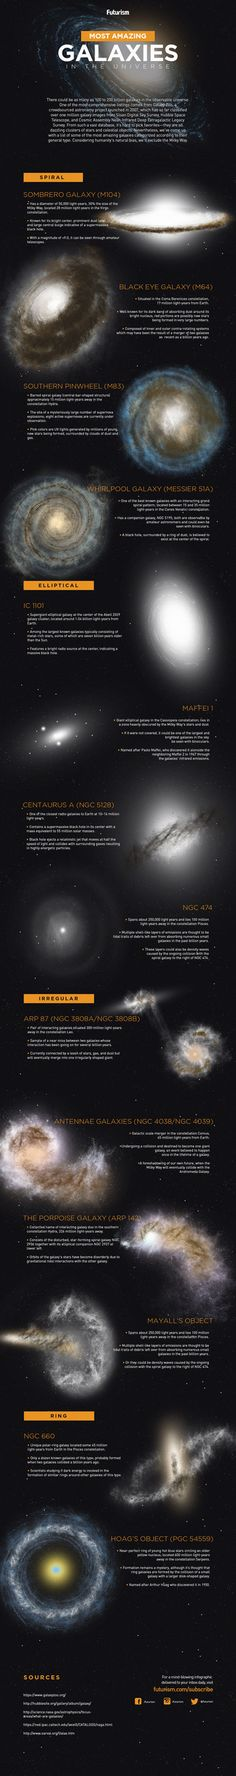 There could be as many as 100 to 200 billion galaxies in the observable universe. Here are some of the most fascinating. http://futurism.com/images/most-amazing-galaxies-in-the-universe-infographic/?utm_campaign=coschedule&utm_source=pinterest&utm_medium=Futurism&utm_content=The%20Most%20Amazing%20Galaxies%20In%20The%20Universe%20%5BInfographic%5D